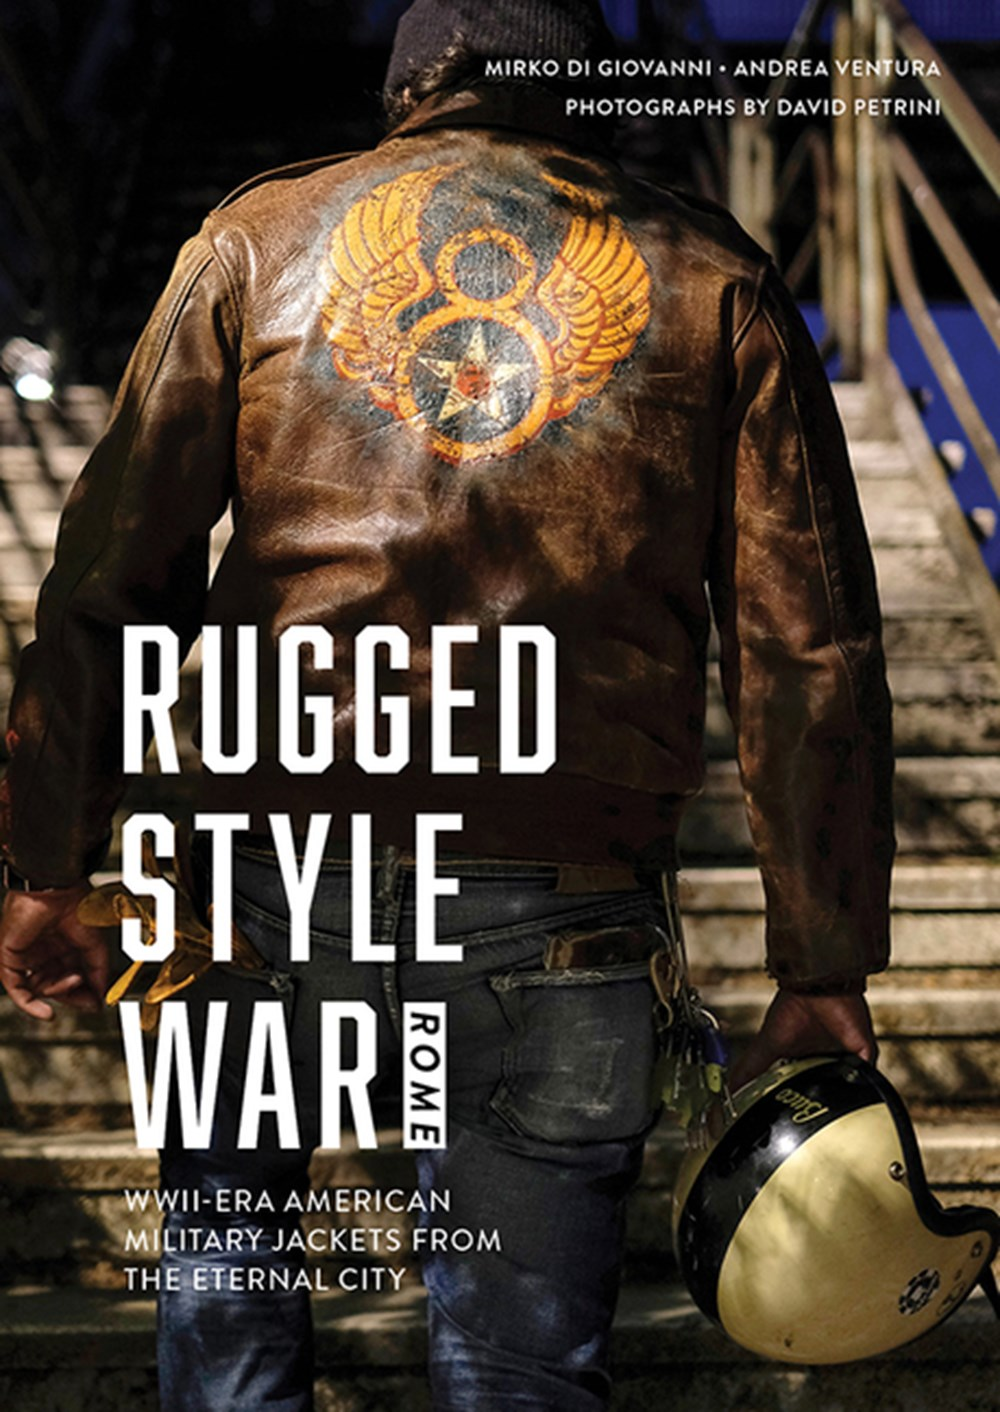 Rugged Style War--Rome Wwii-Era American Military Jackets from the Eternal City